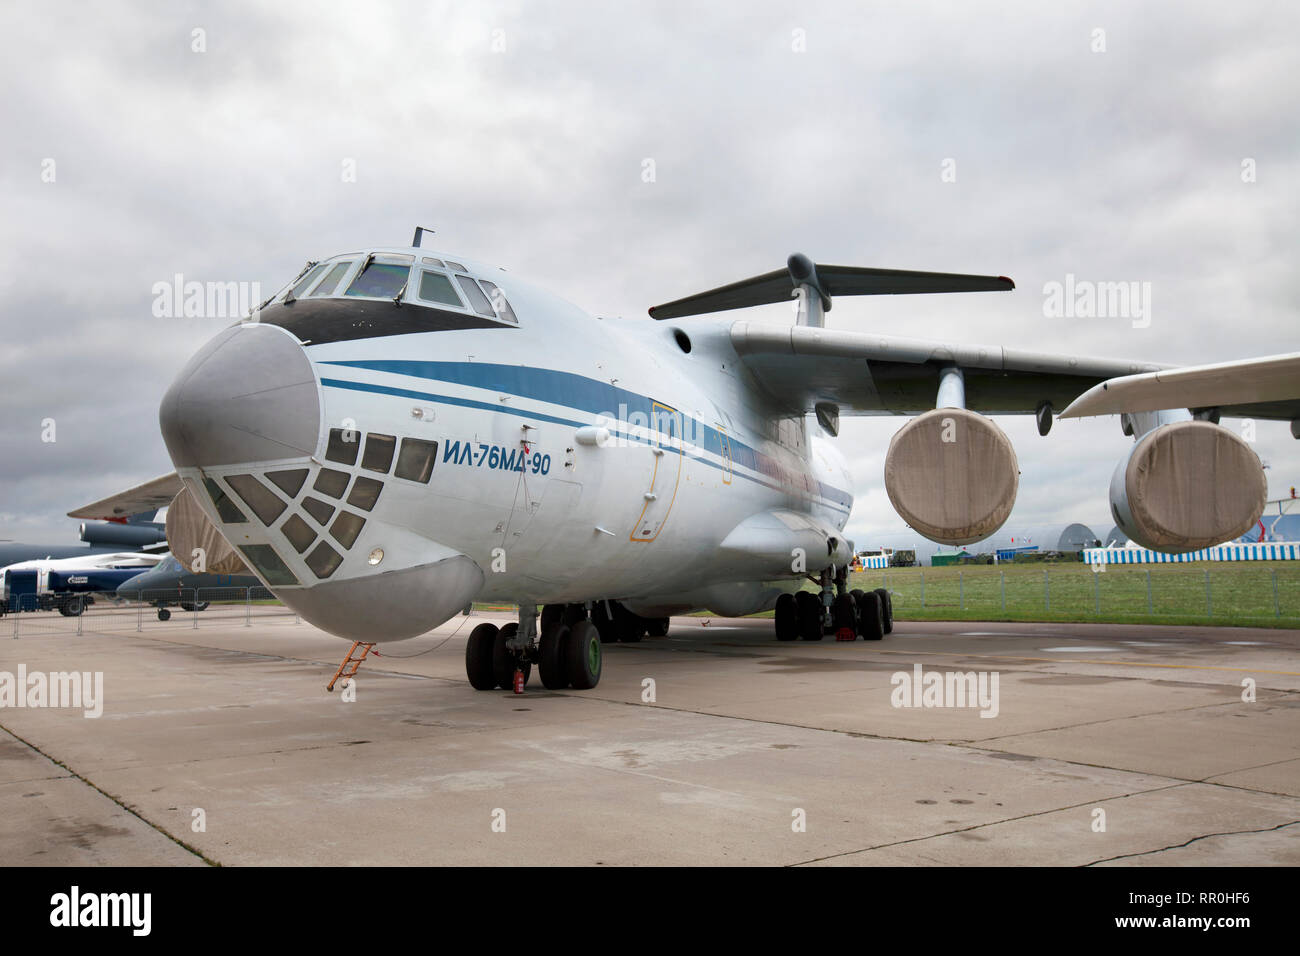 Soviet medium military transport aircraft IL-76MD-90 at the air show MAKS-2011 in Zhukovsky, Moscow region, Russia Stock Photo